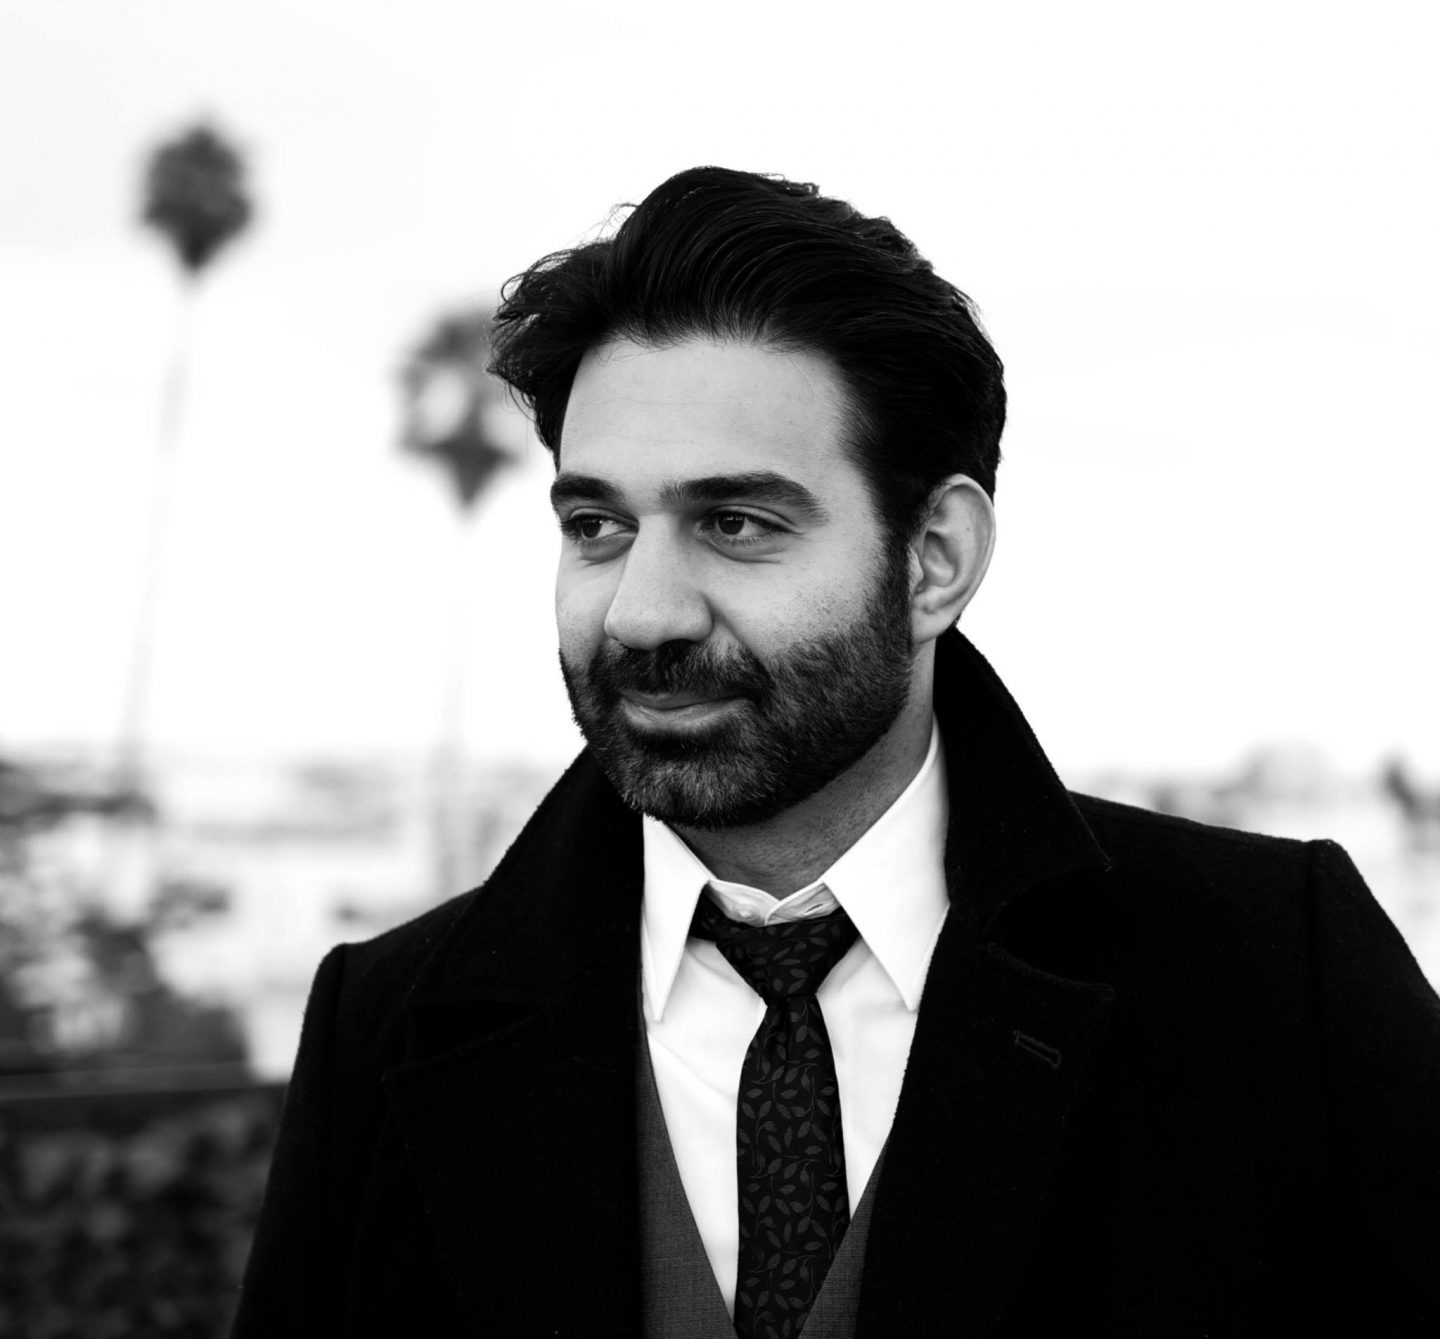 Becoming Human: A Chat With Composer Nima Fakhrara